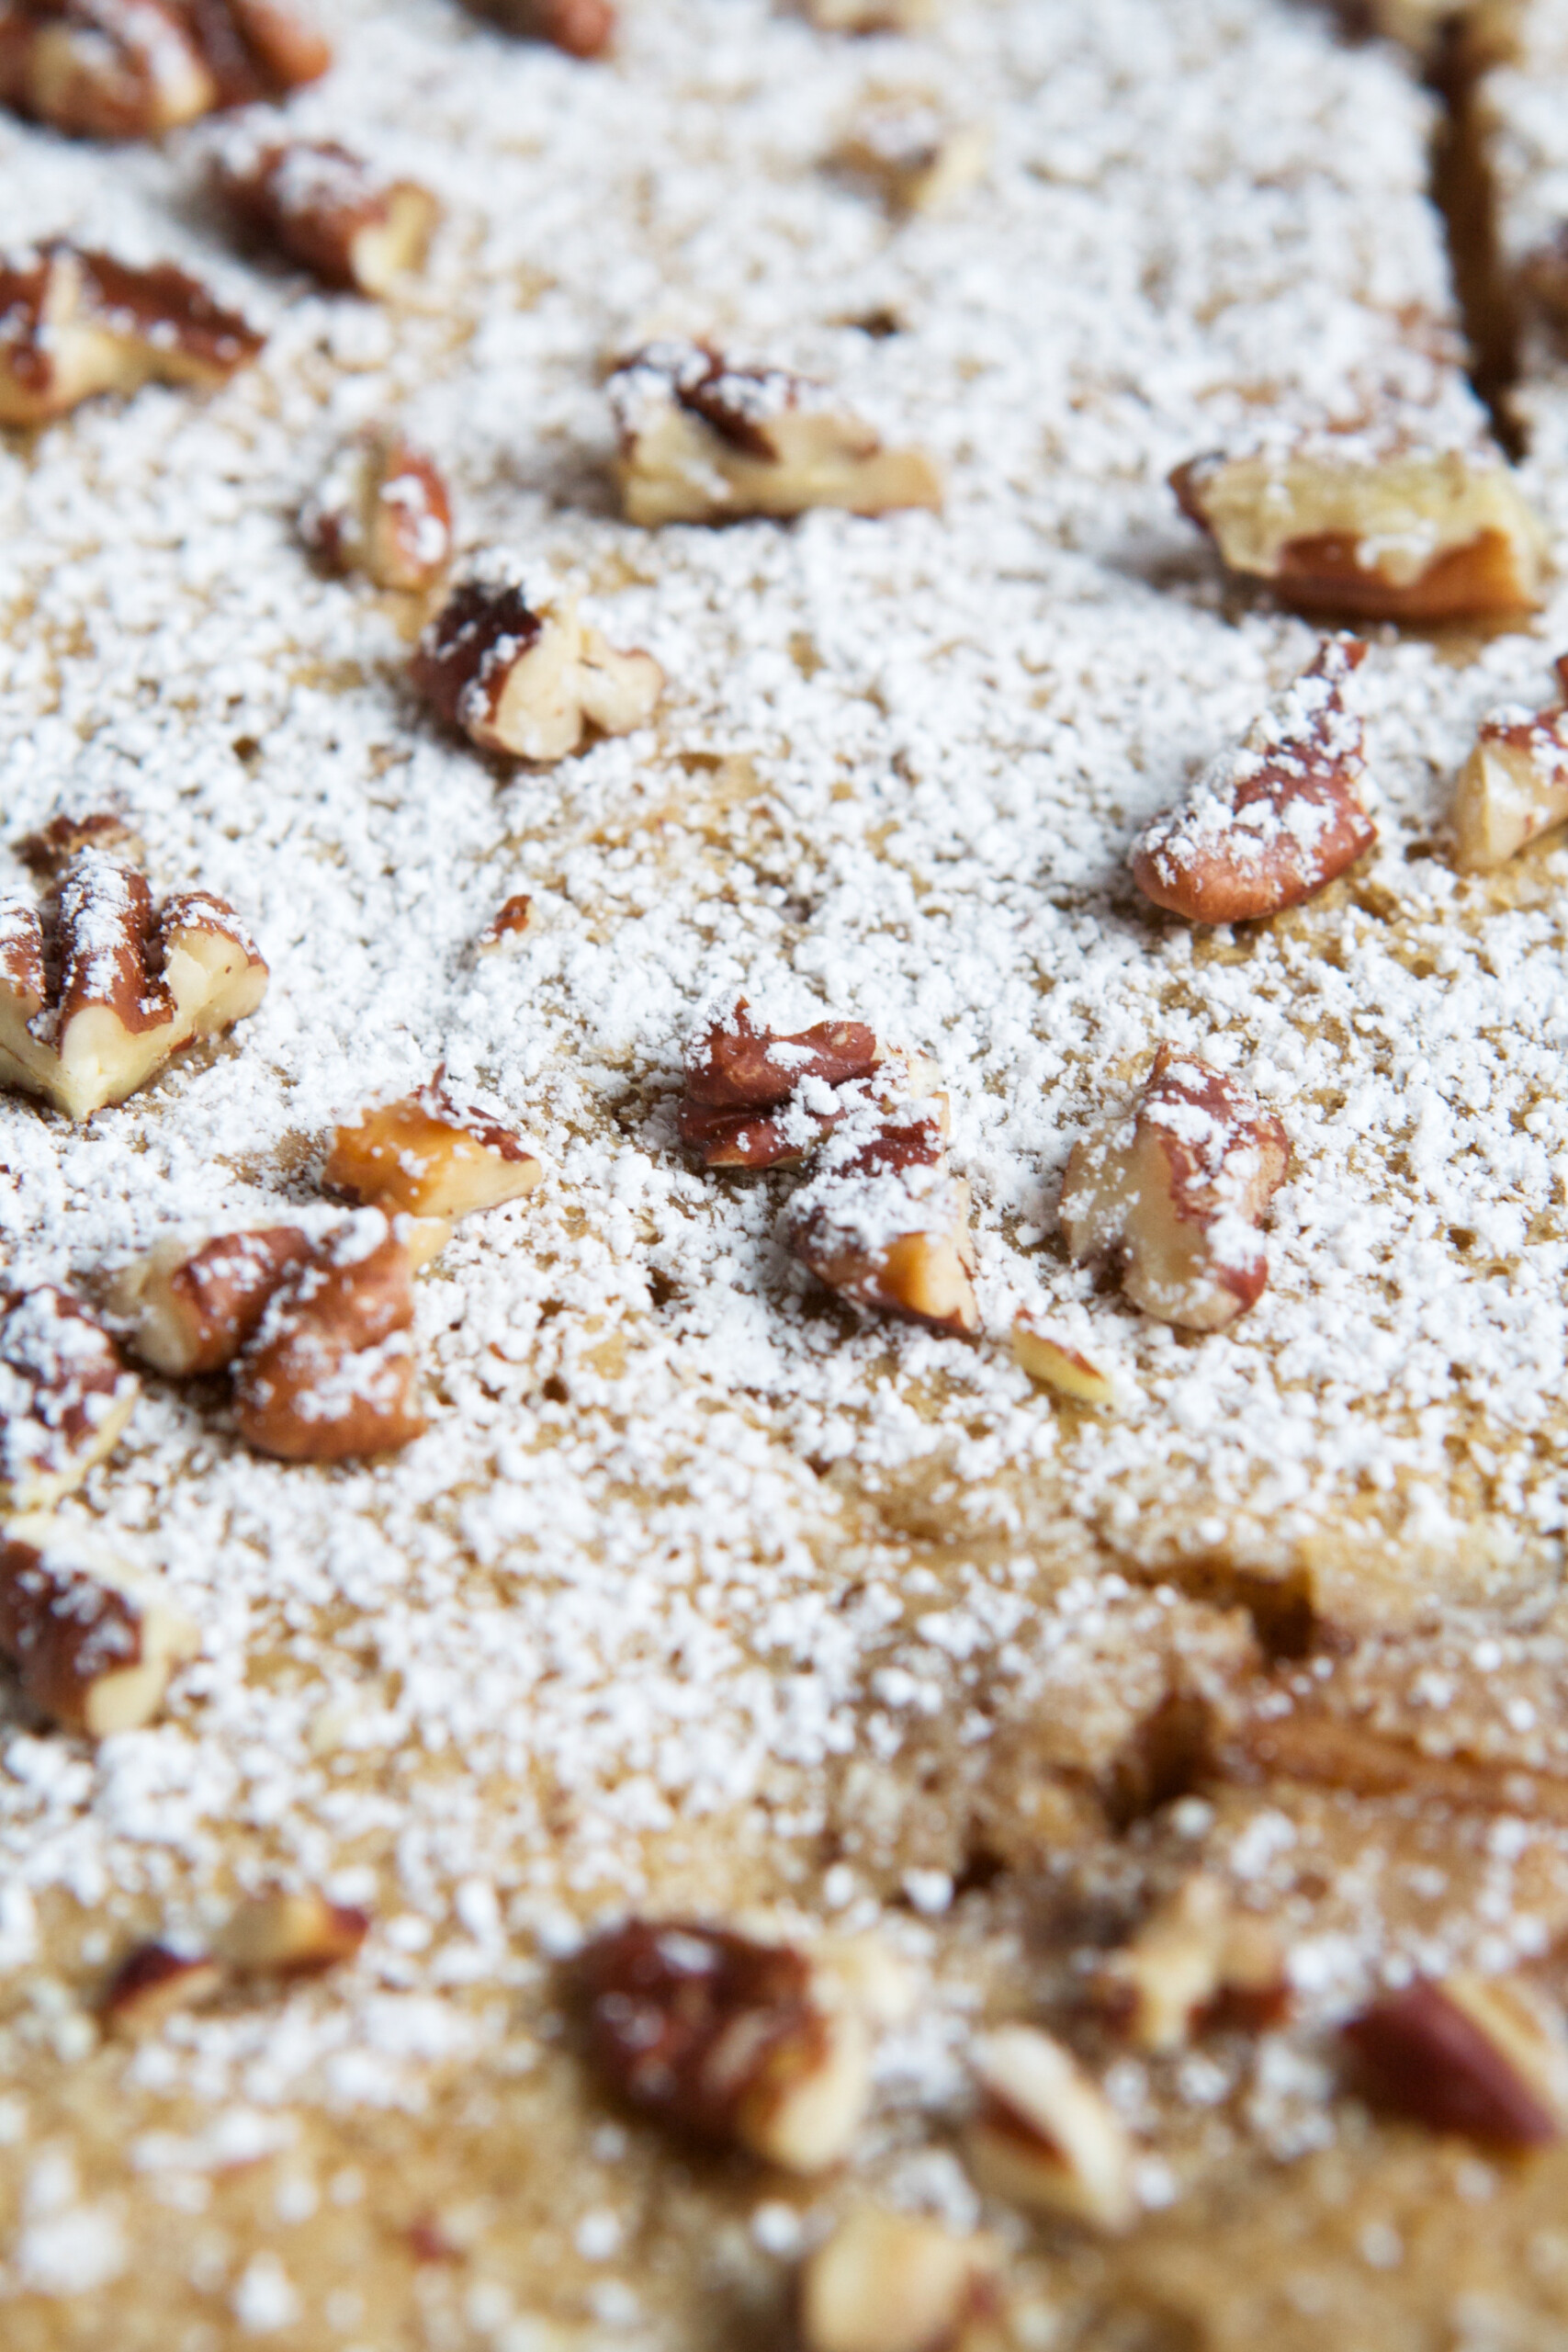 Close up photo of powdered sugar and nuts scattered on a puffed apple pancake